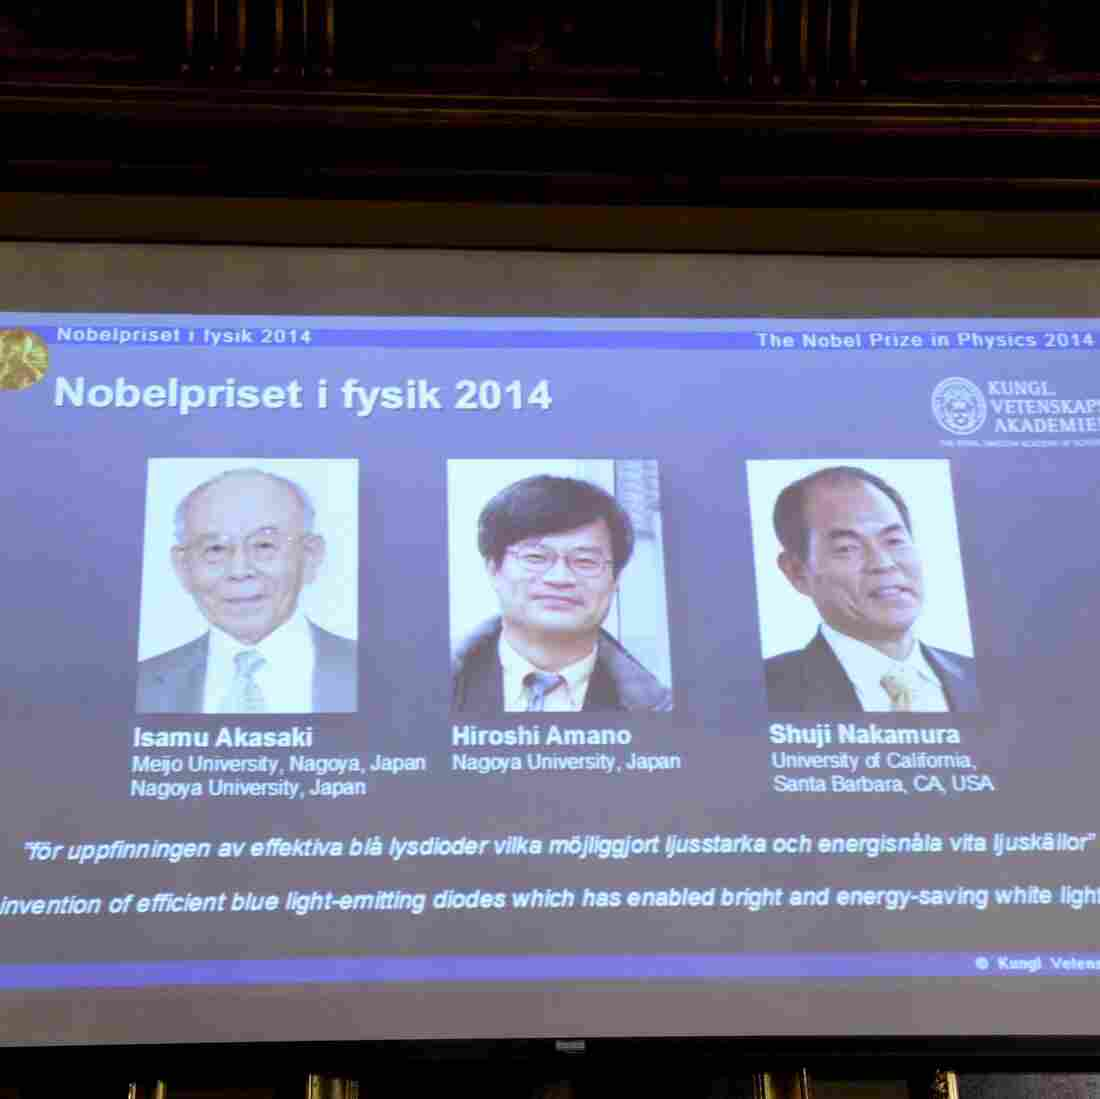 3 Scientists Win Nobel In Physics For Development Of Blue LED